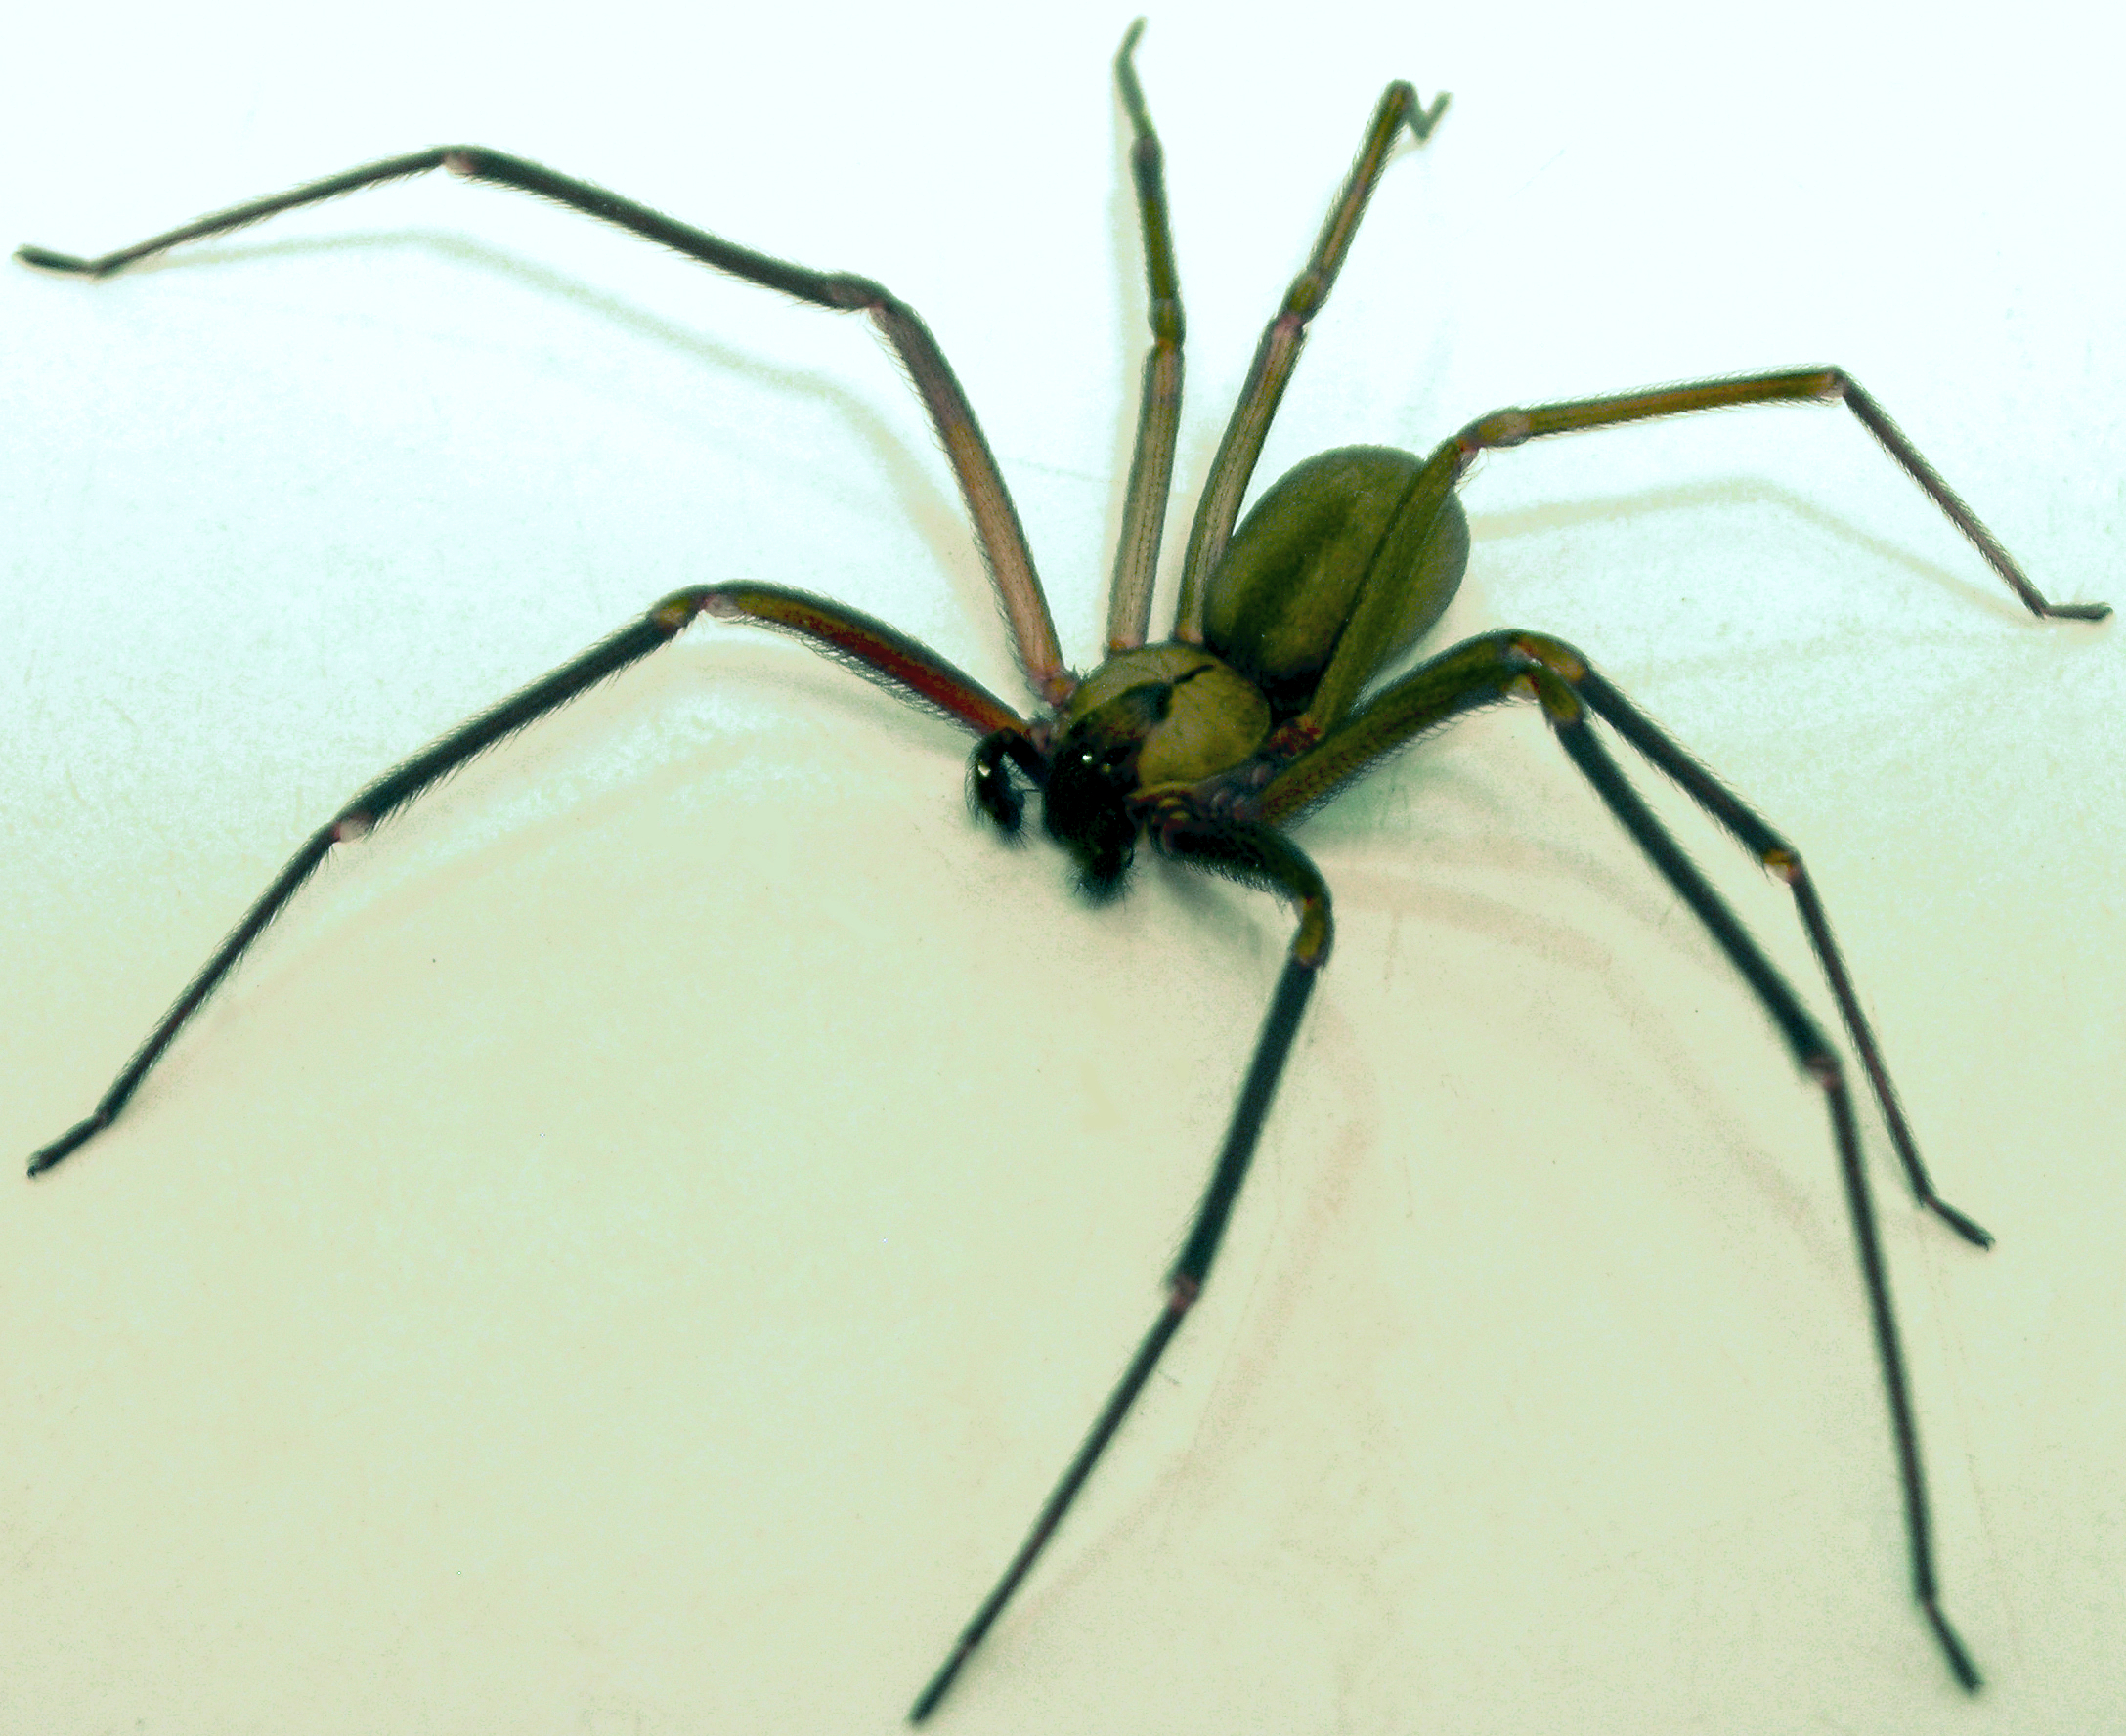 http://fr.academic.ru/pictures/frwiki/66/Brown-recluse-2-edit.jpg